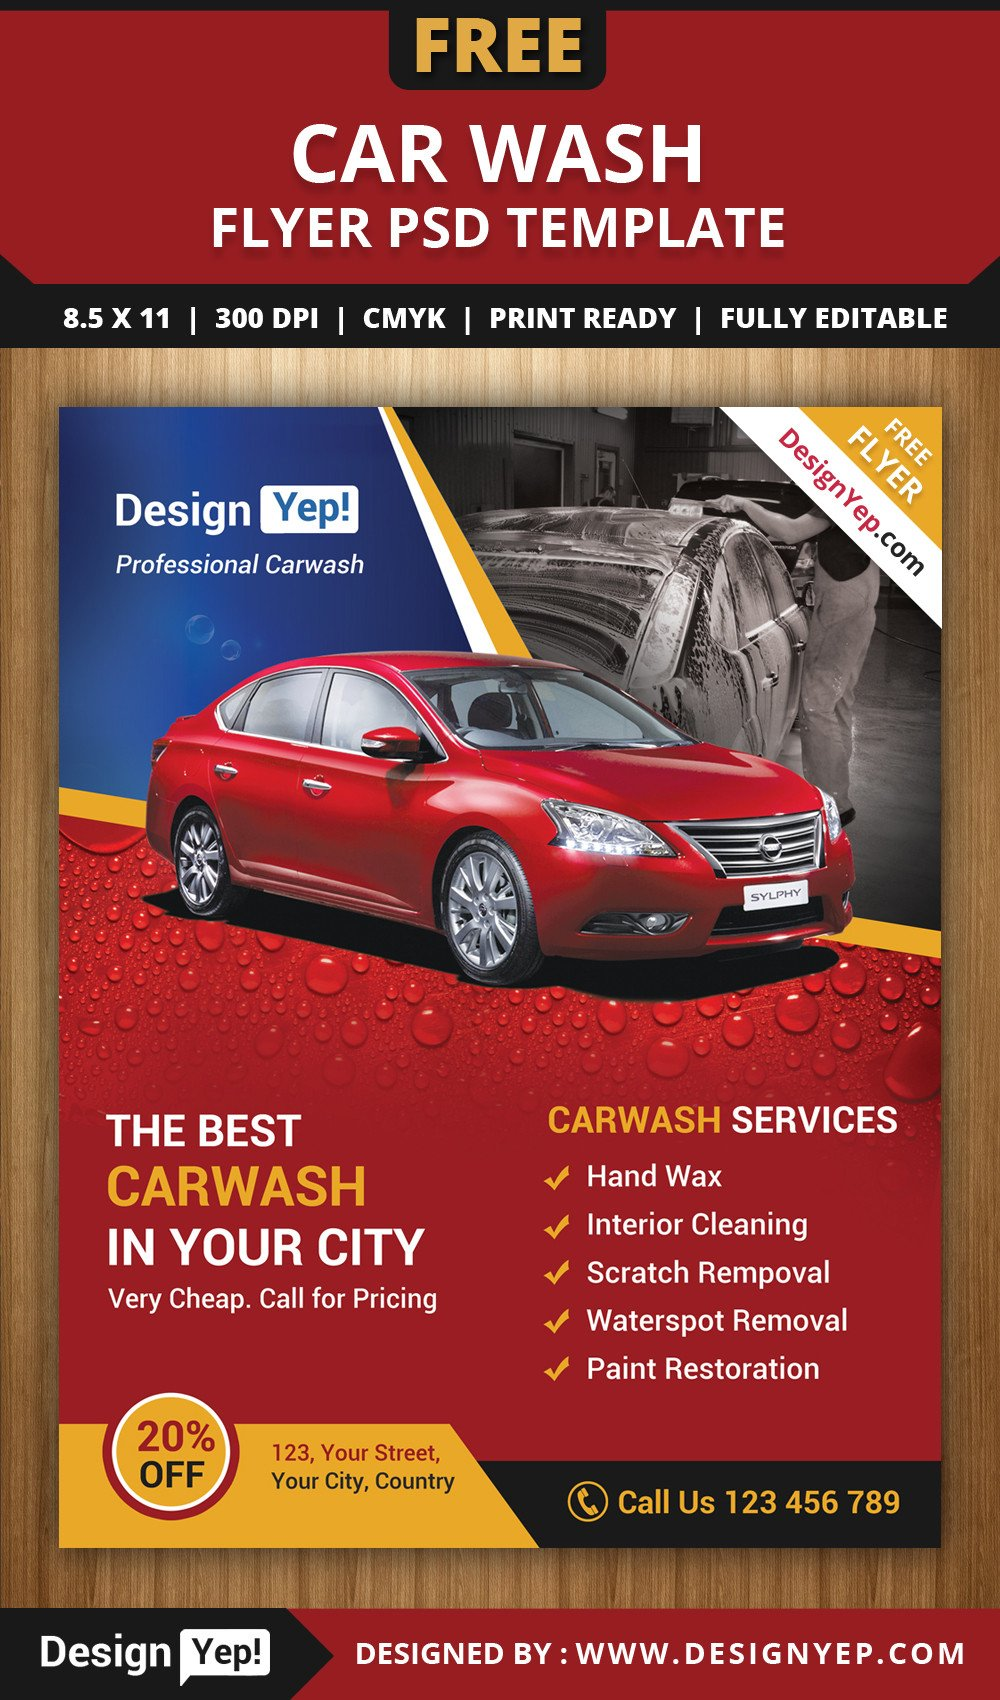 Car Wash Flyers Template Free Car Wash Flyer Psd Template Designyep